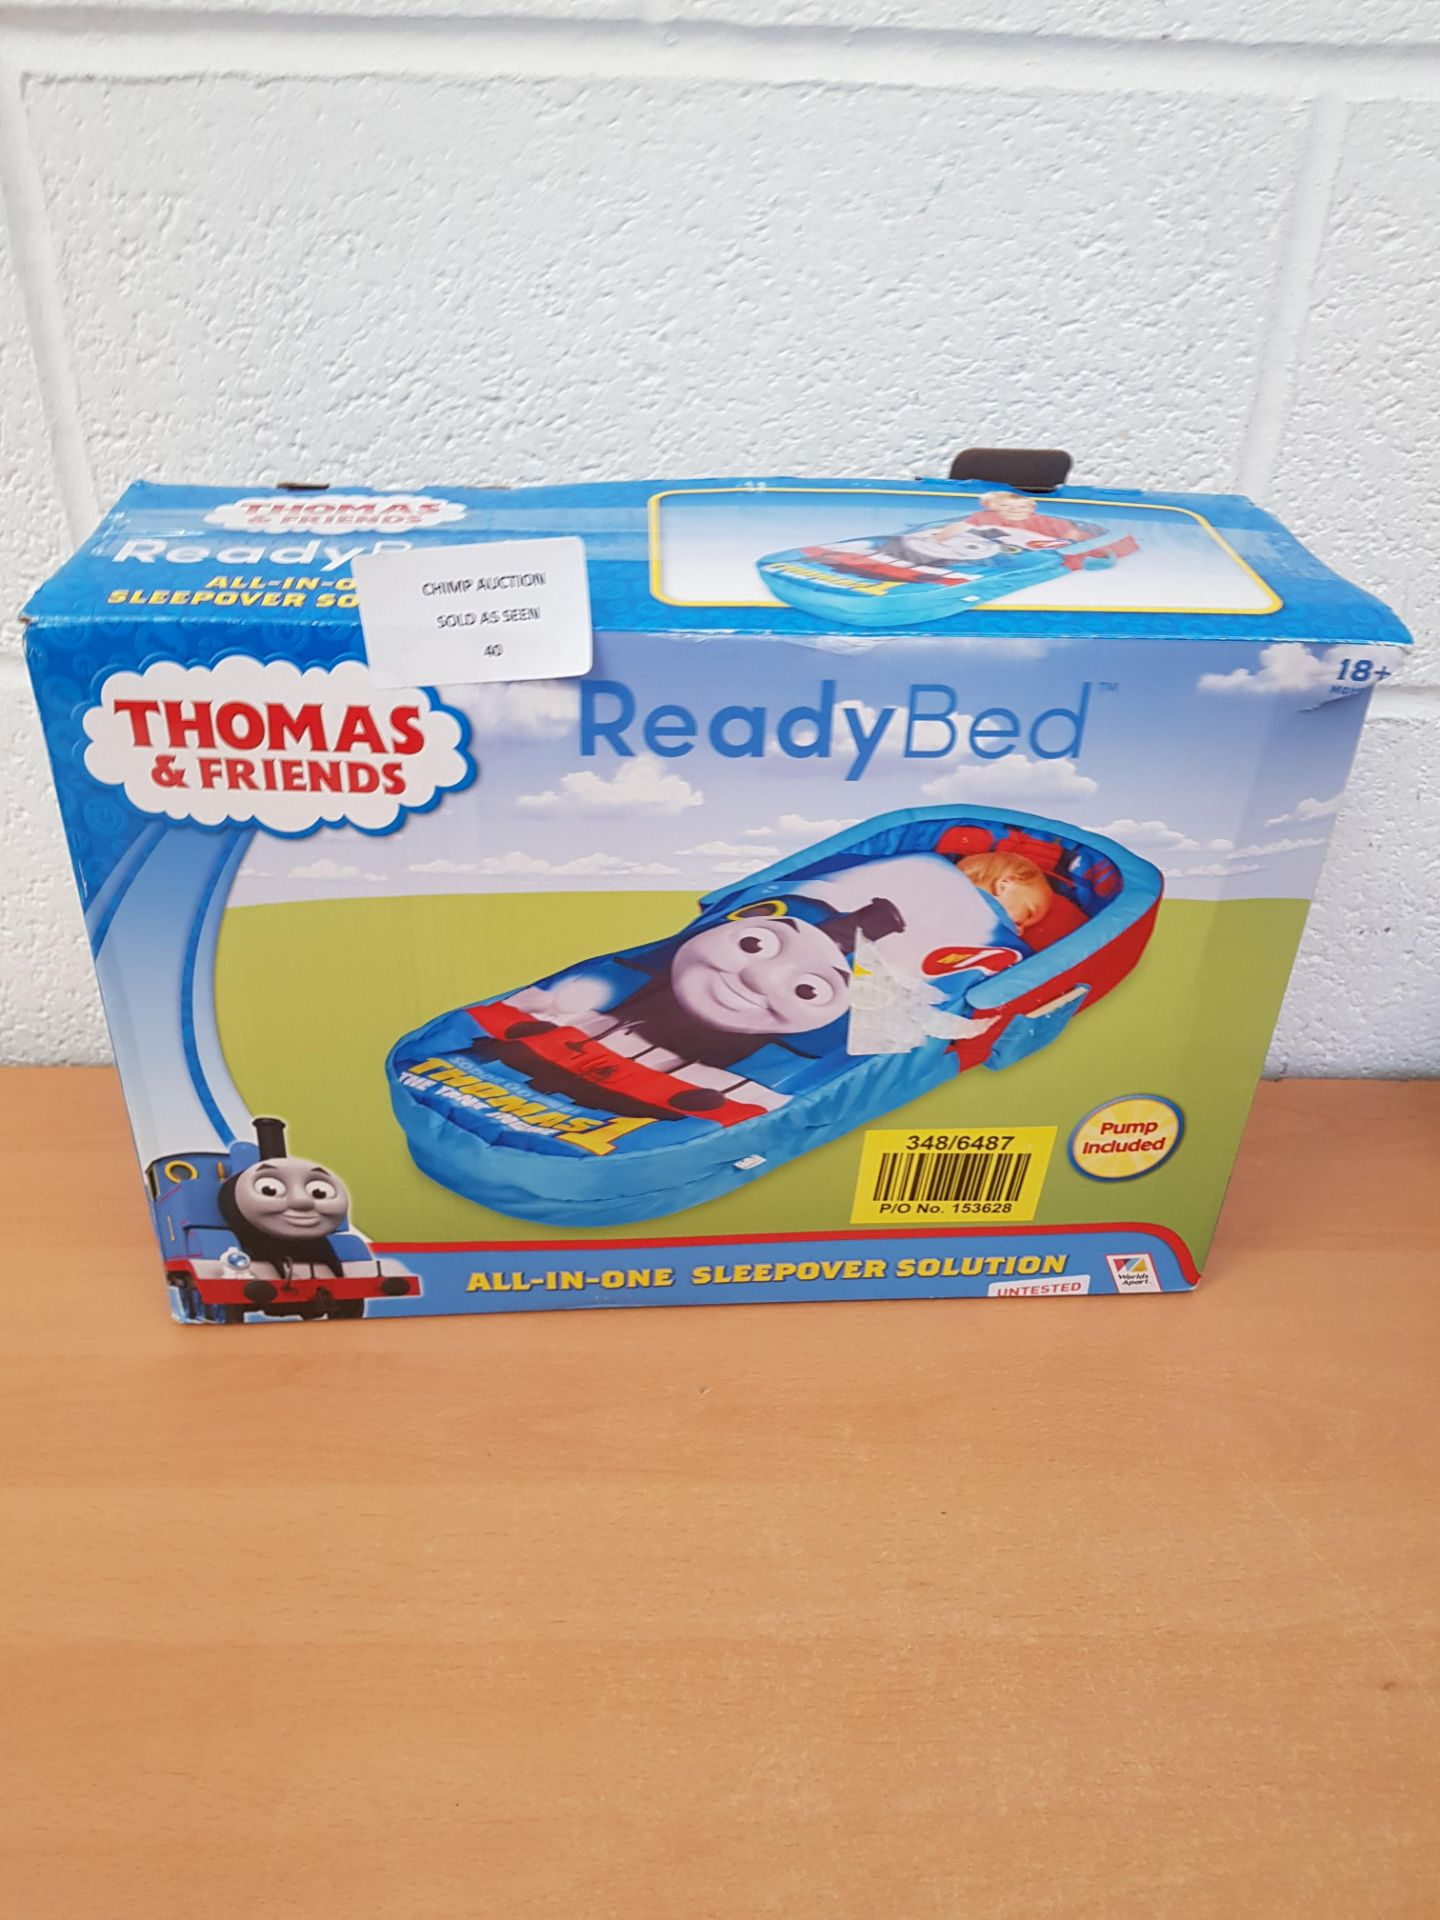 Lot 40 - Thomas & Friends Ready Bed all in one Sleepover solution